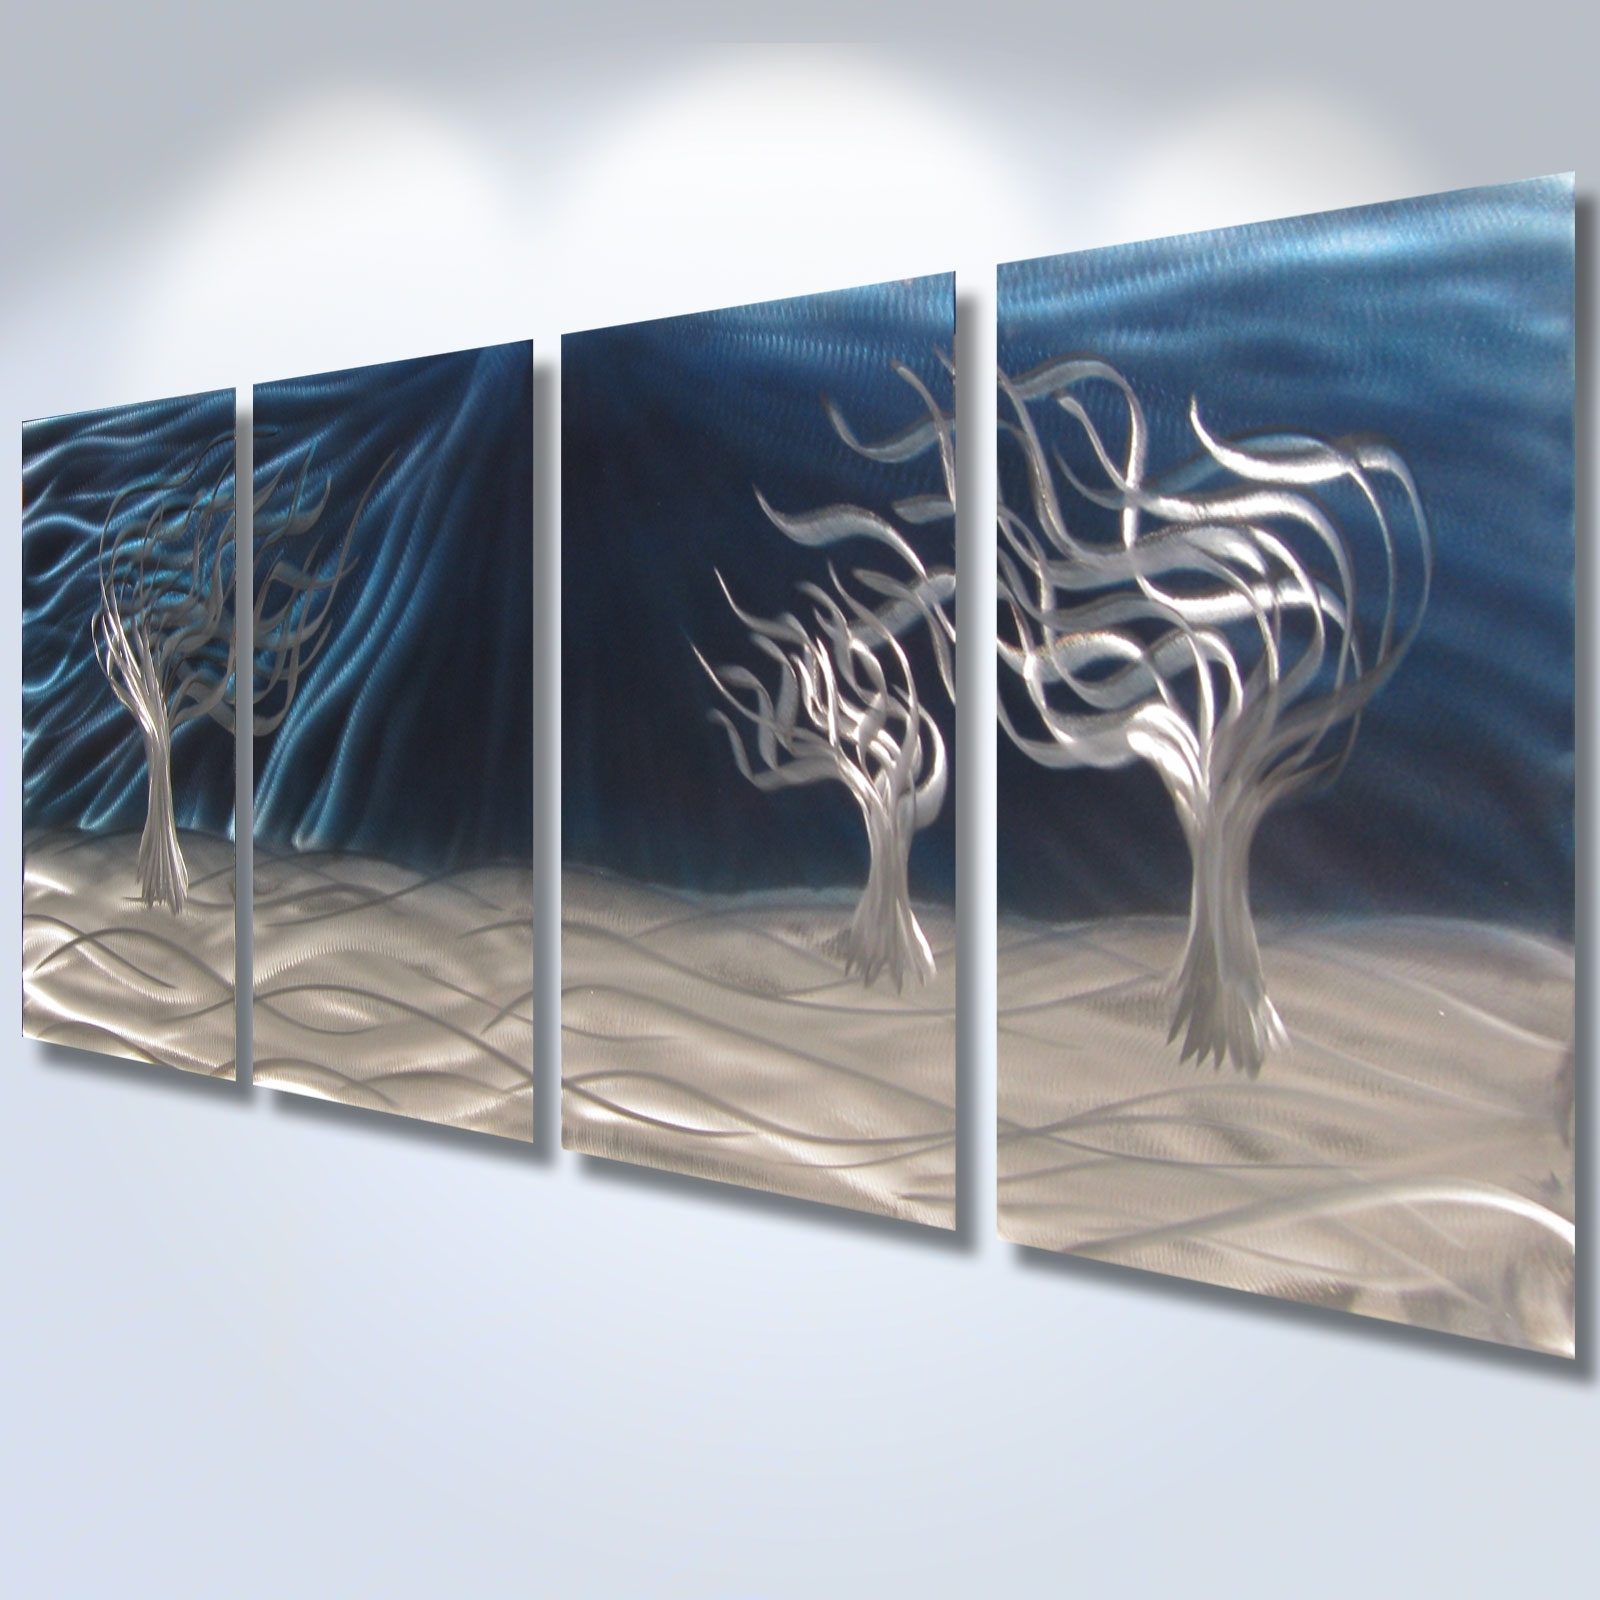 3 Trees Blue – Abstract Metal Wall Art Contemporary Modern Decor Throughout 2018 Abstract Iron Wall Art (View 15 of 20)